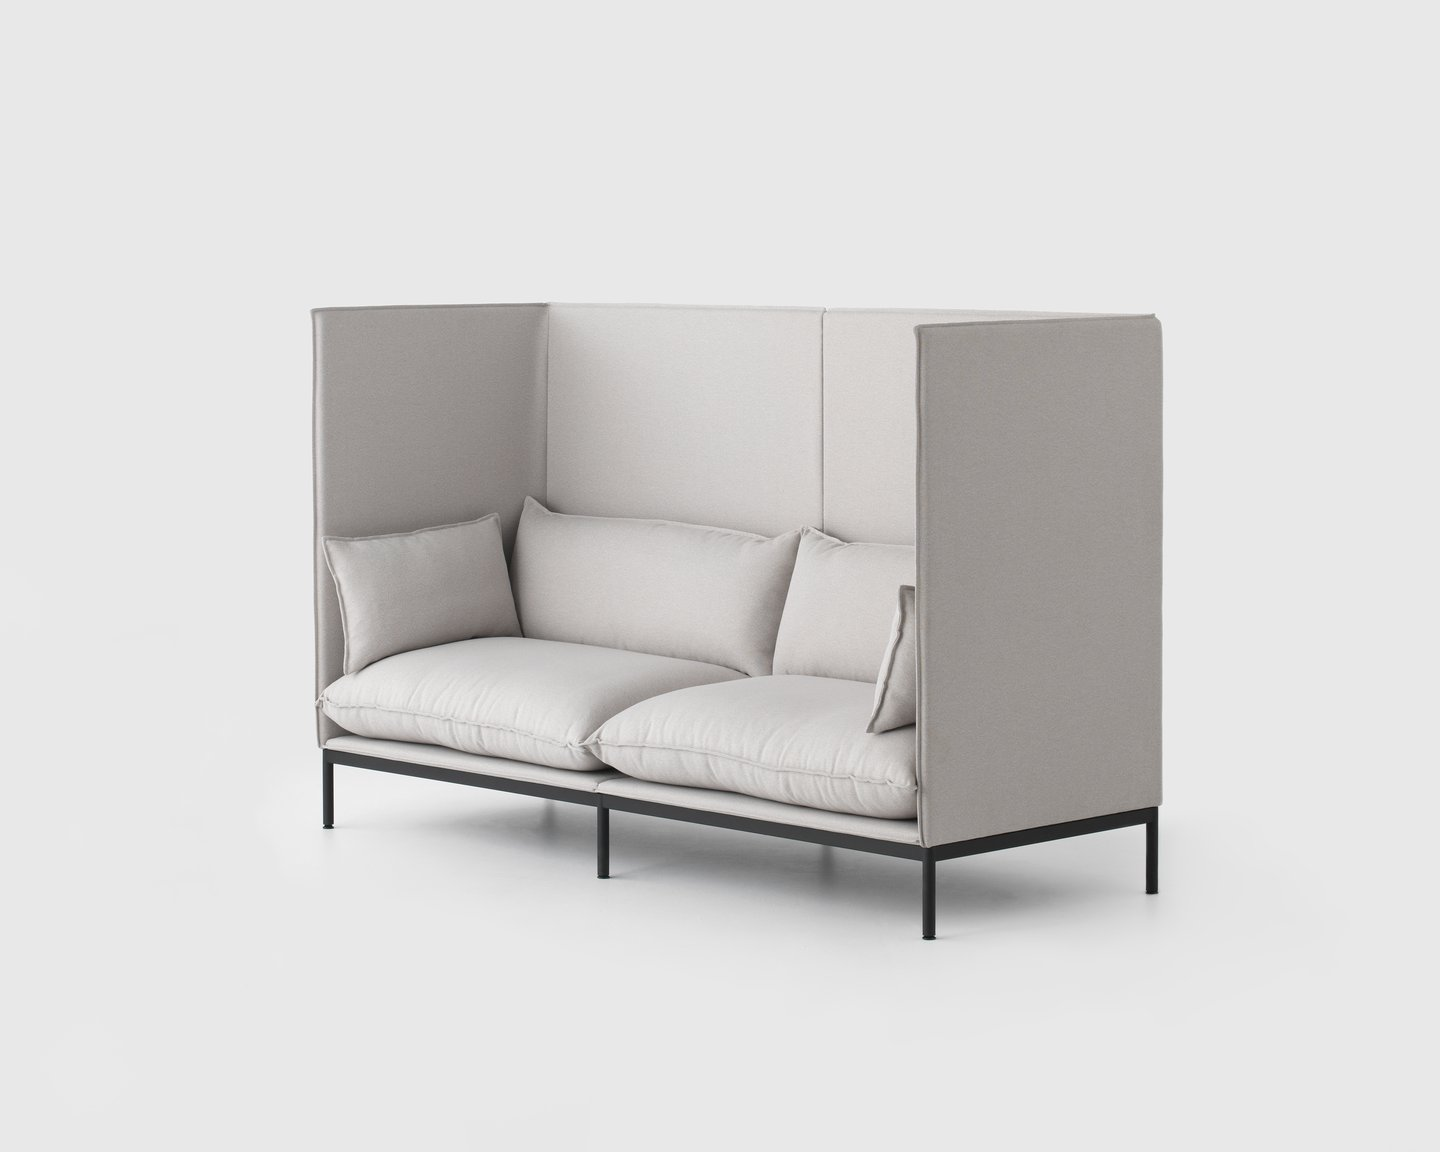 Carousel Sofa - High Back from District